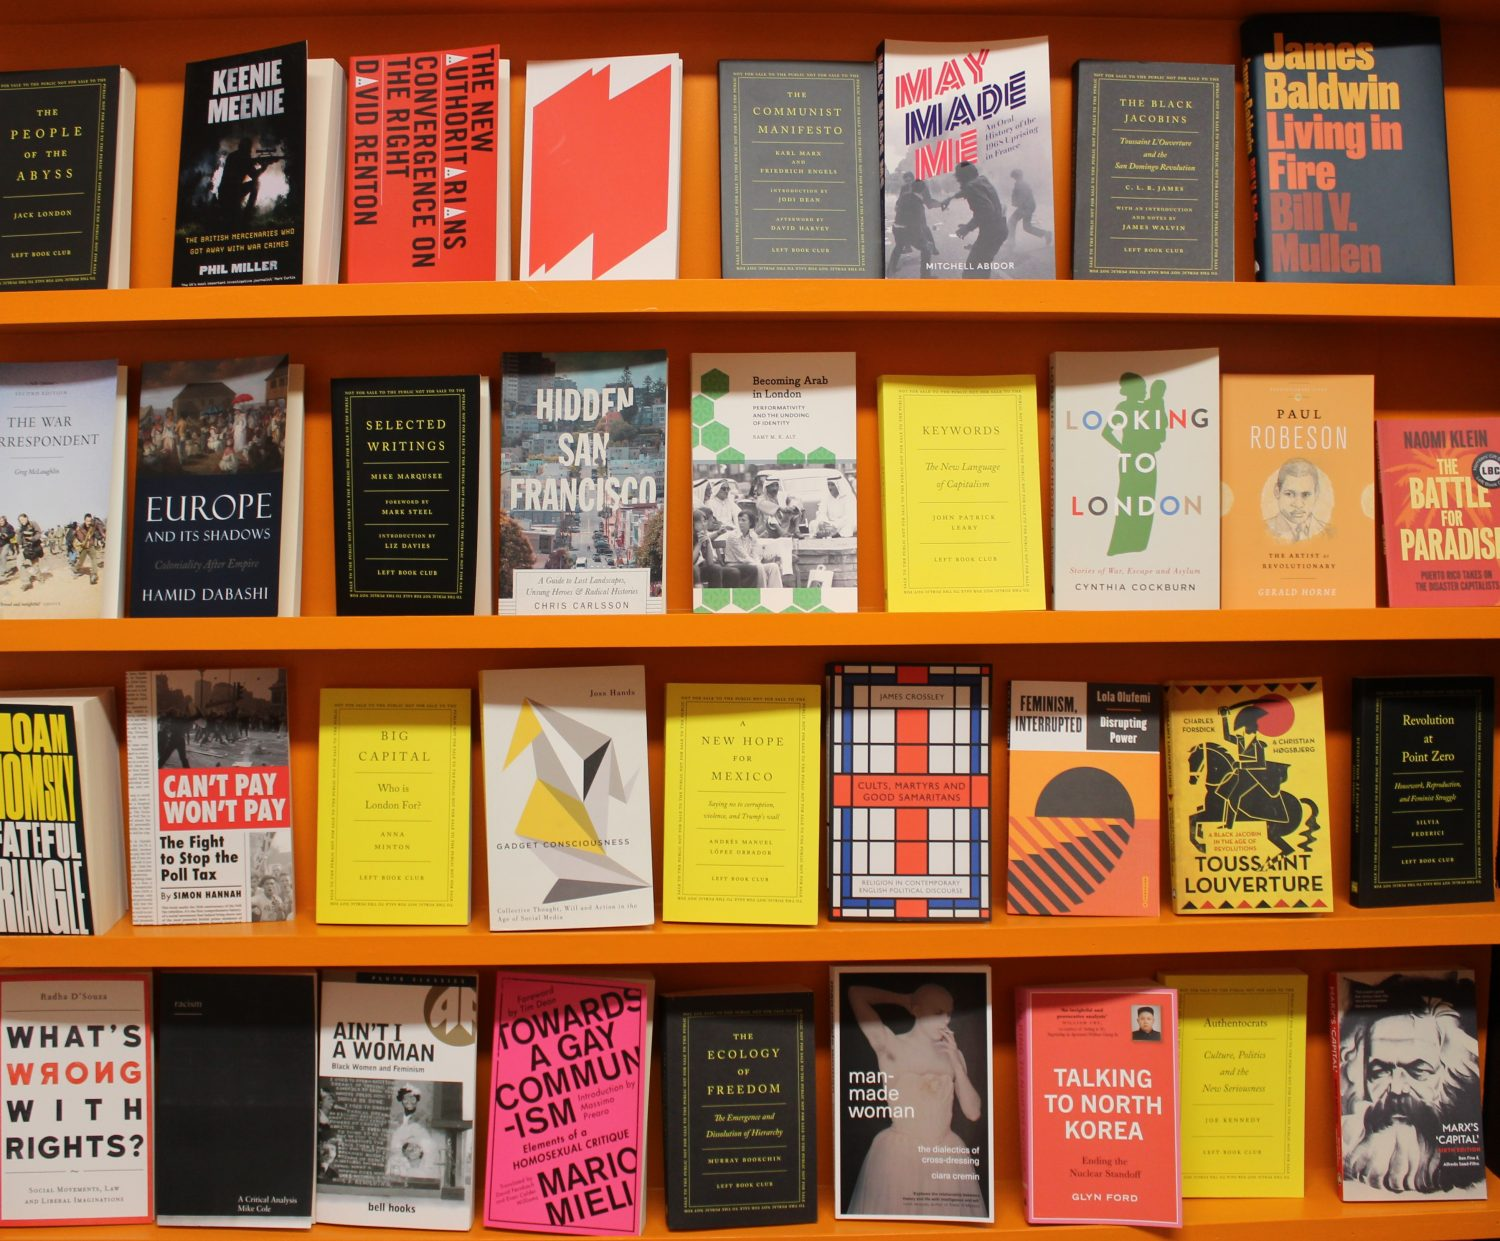 A landscape image of a bookcase stocked top to bottom with books. The bookcase is a bright orange colour, with the books having a range of different colour covers some yellow, pink and black.